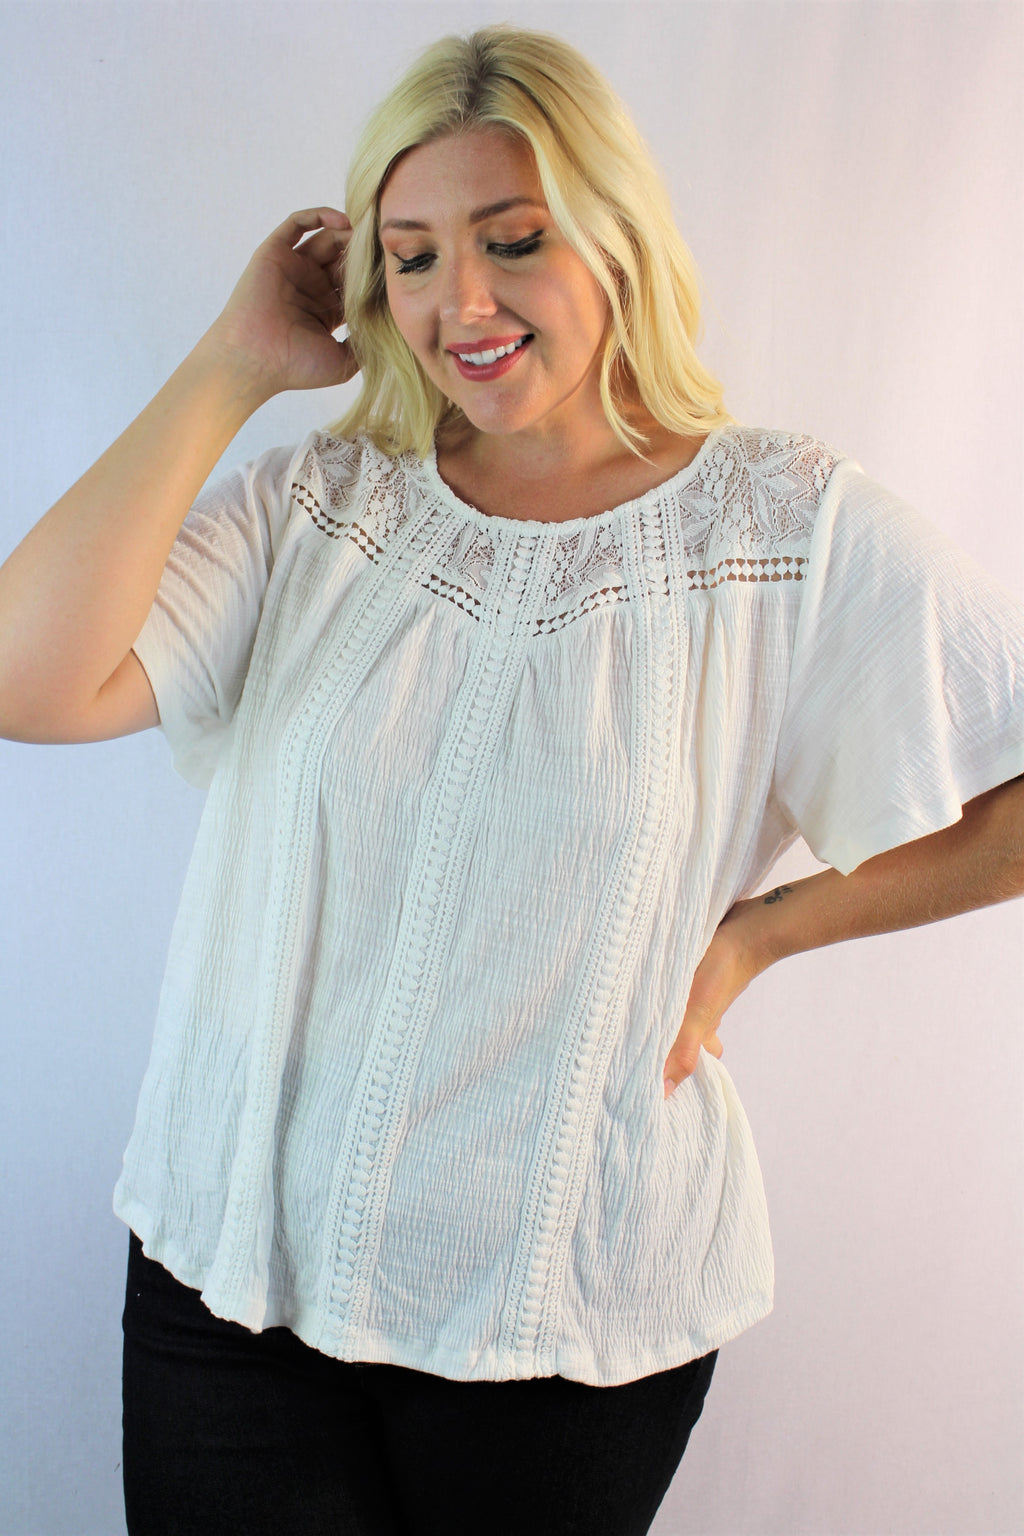 Women's Plus Size Short Sleeve Blouse w/ Lace & Crochet Details